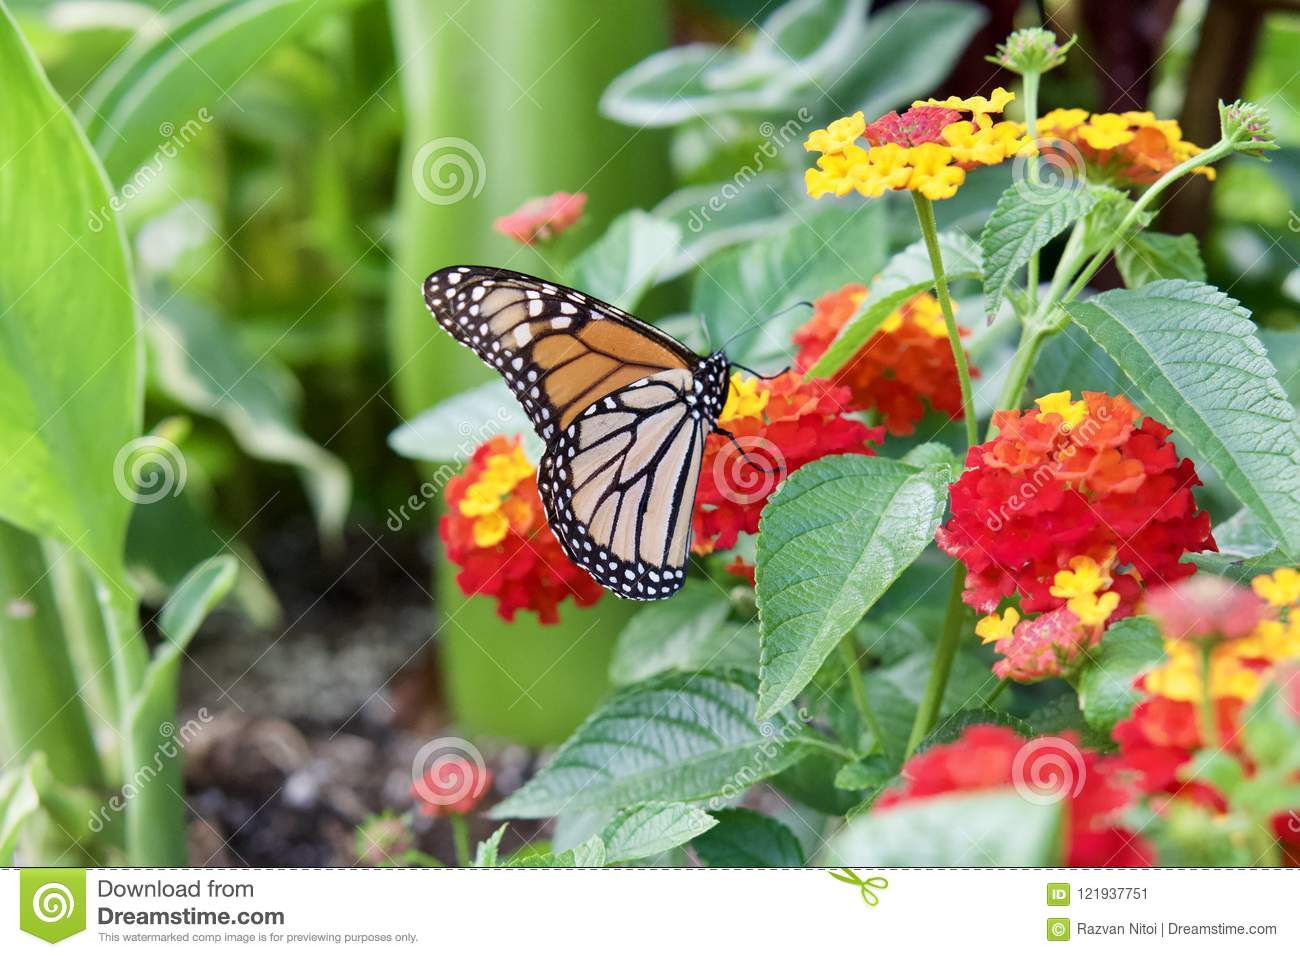 Monarch Butterfly On A Flower In The Park Stock Image